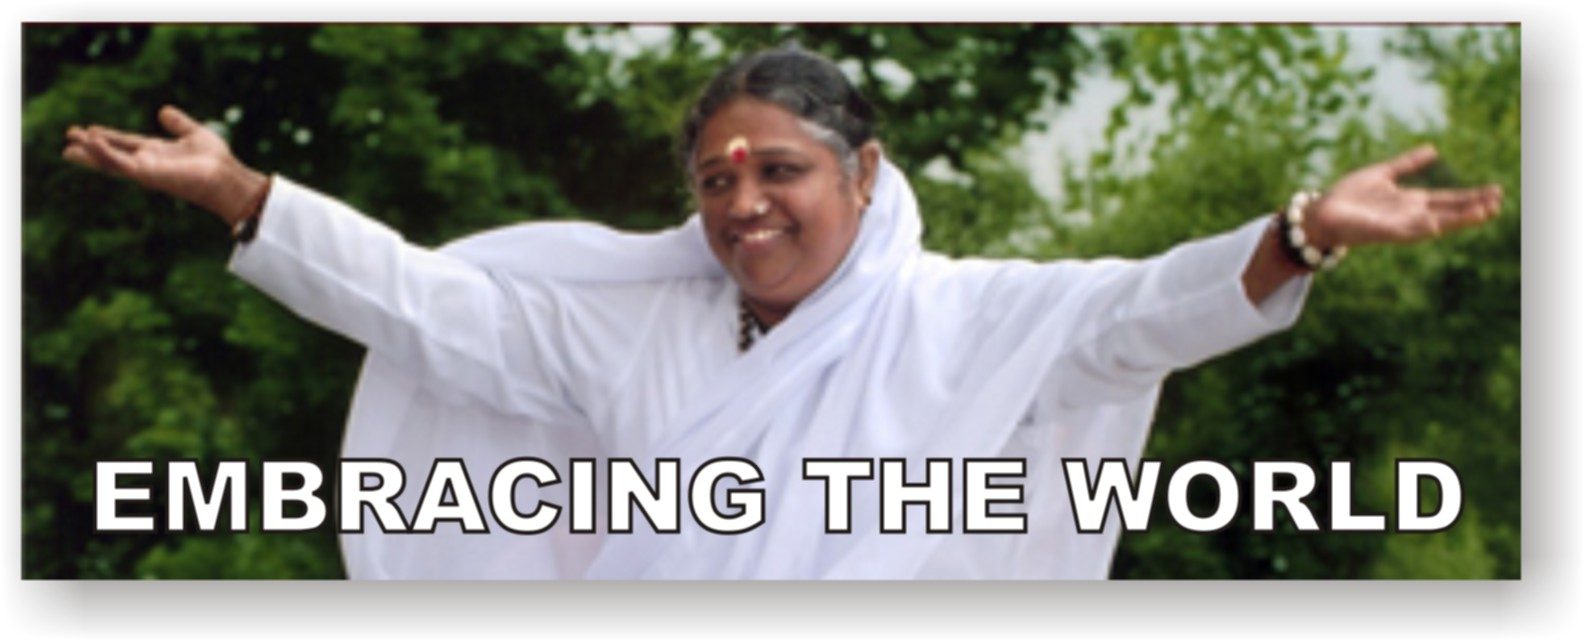 AMMA – Embracing the World